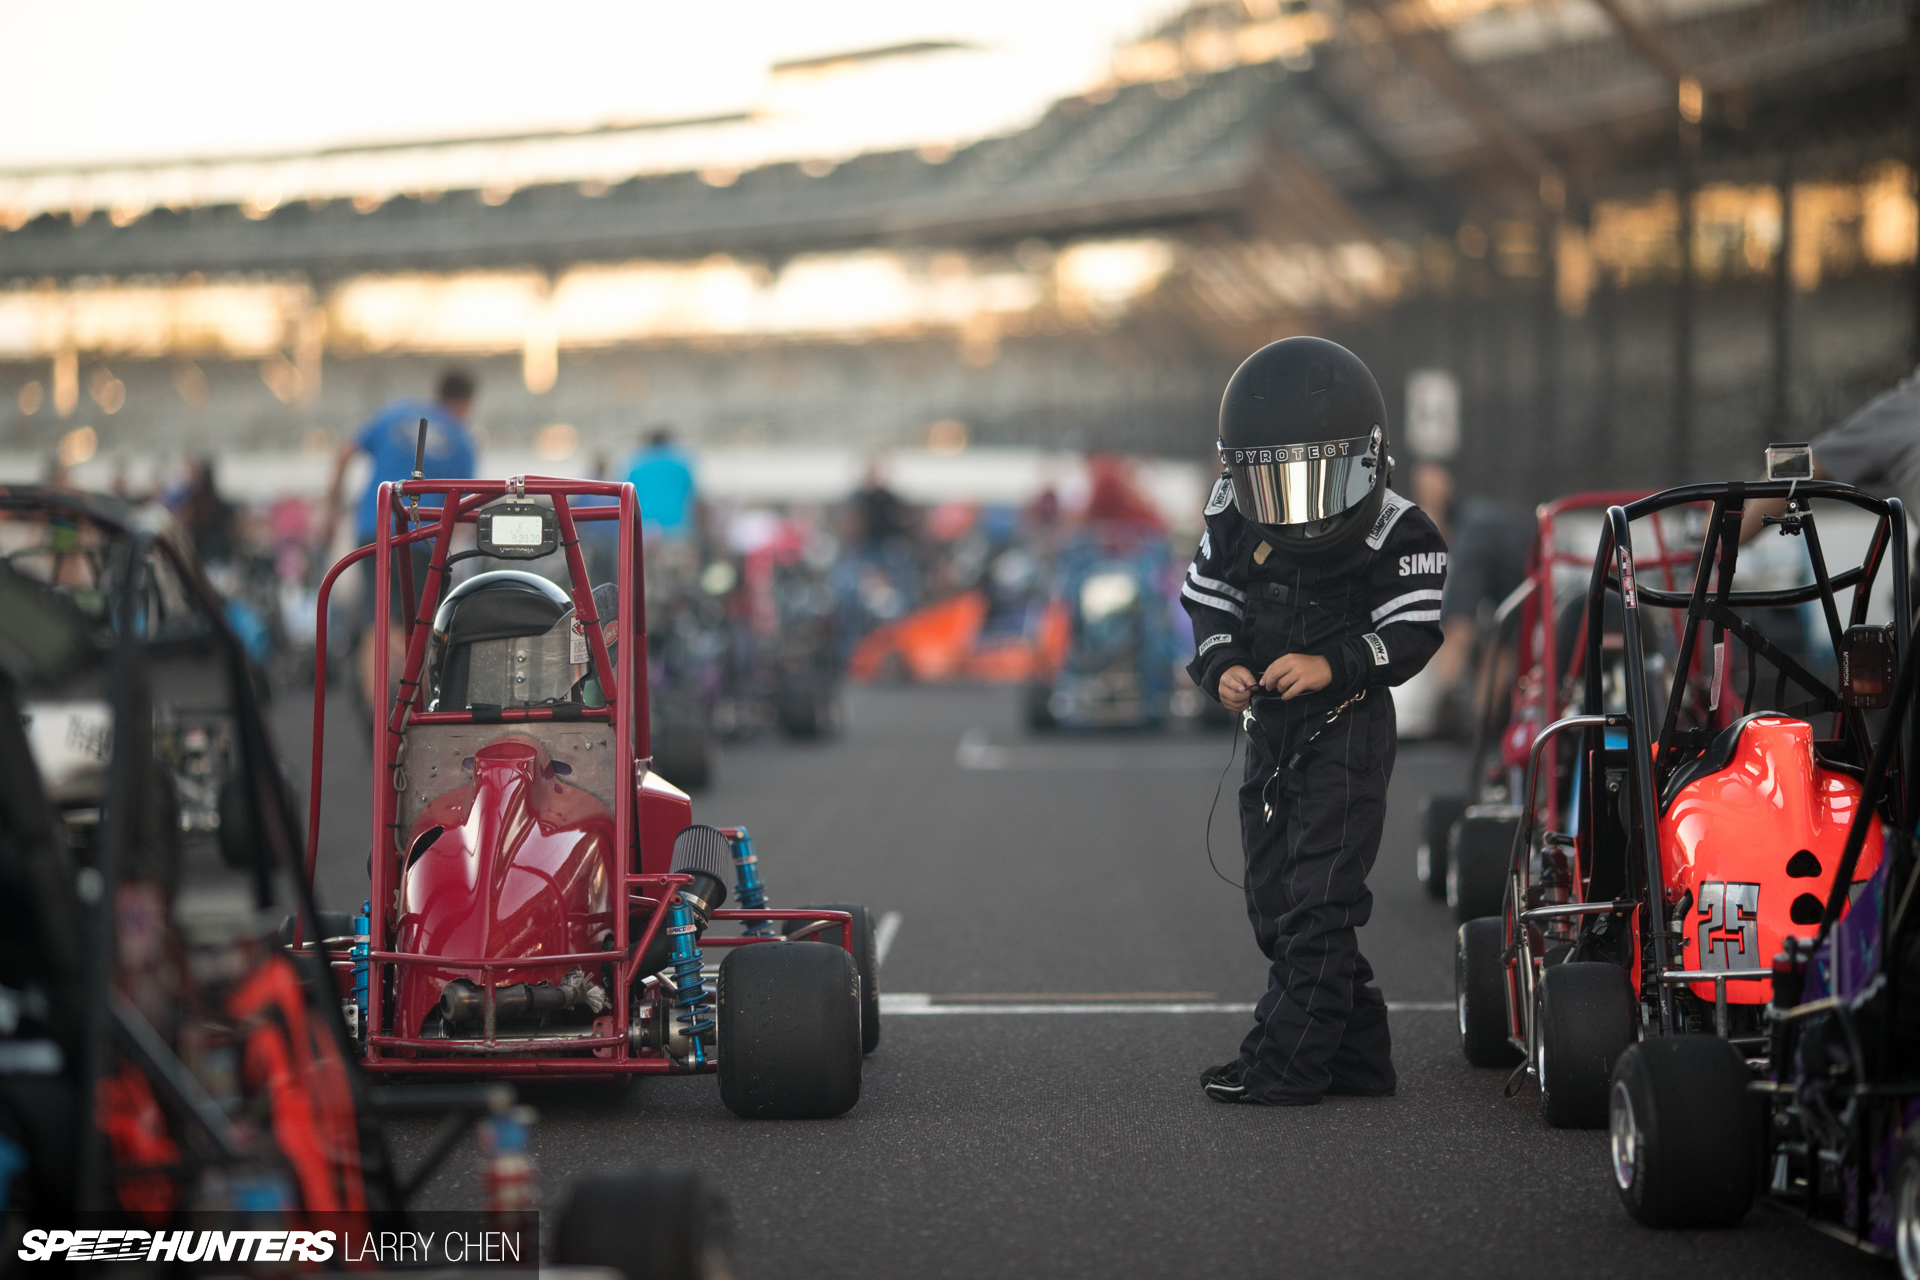 Japanese oval midget racing